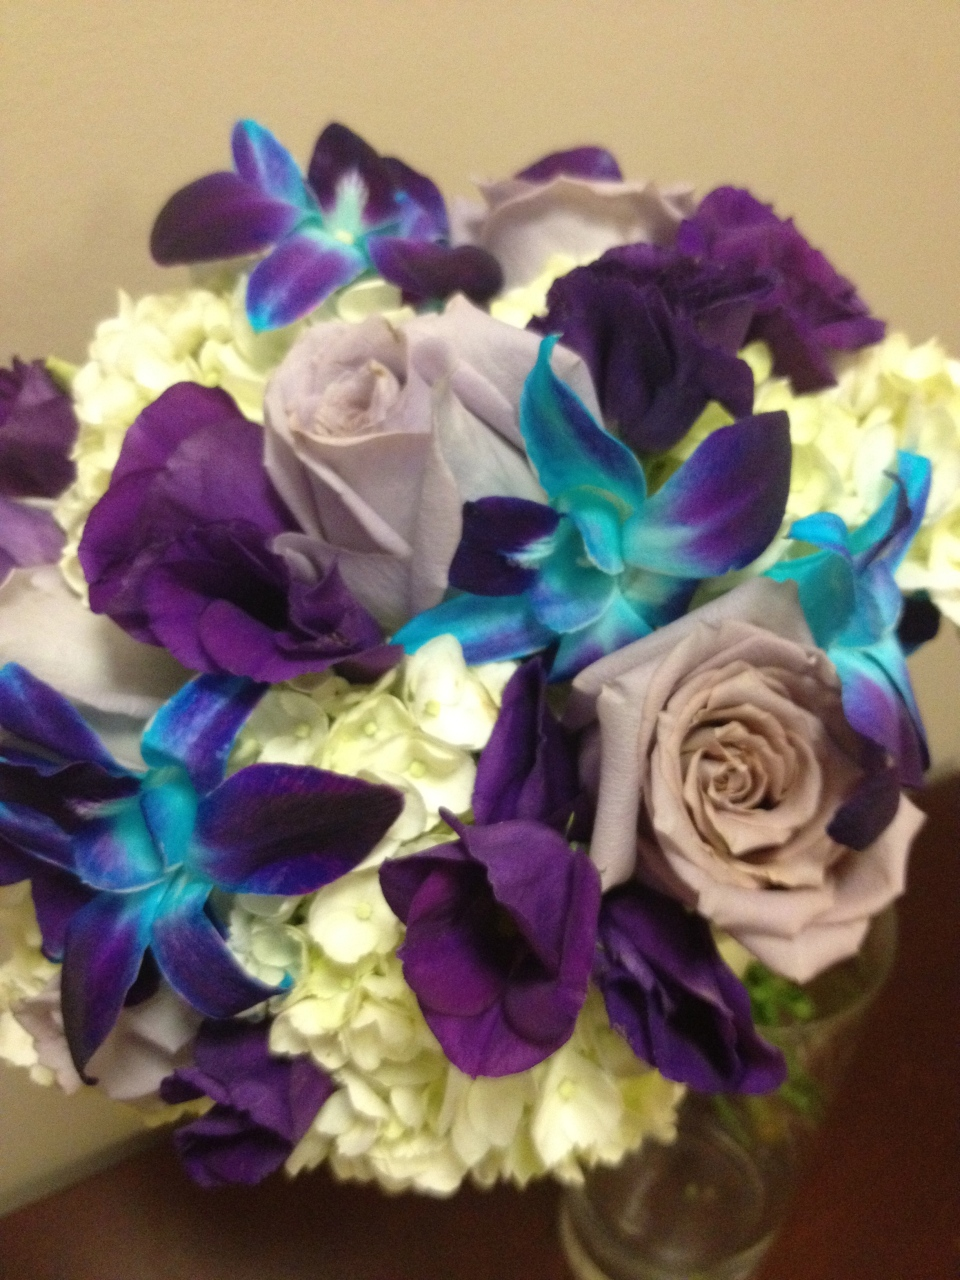 Detail of those gorgeous blue and purple orchids!